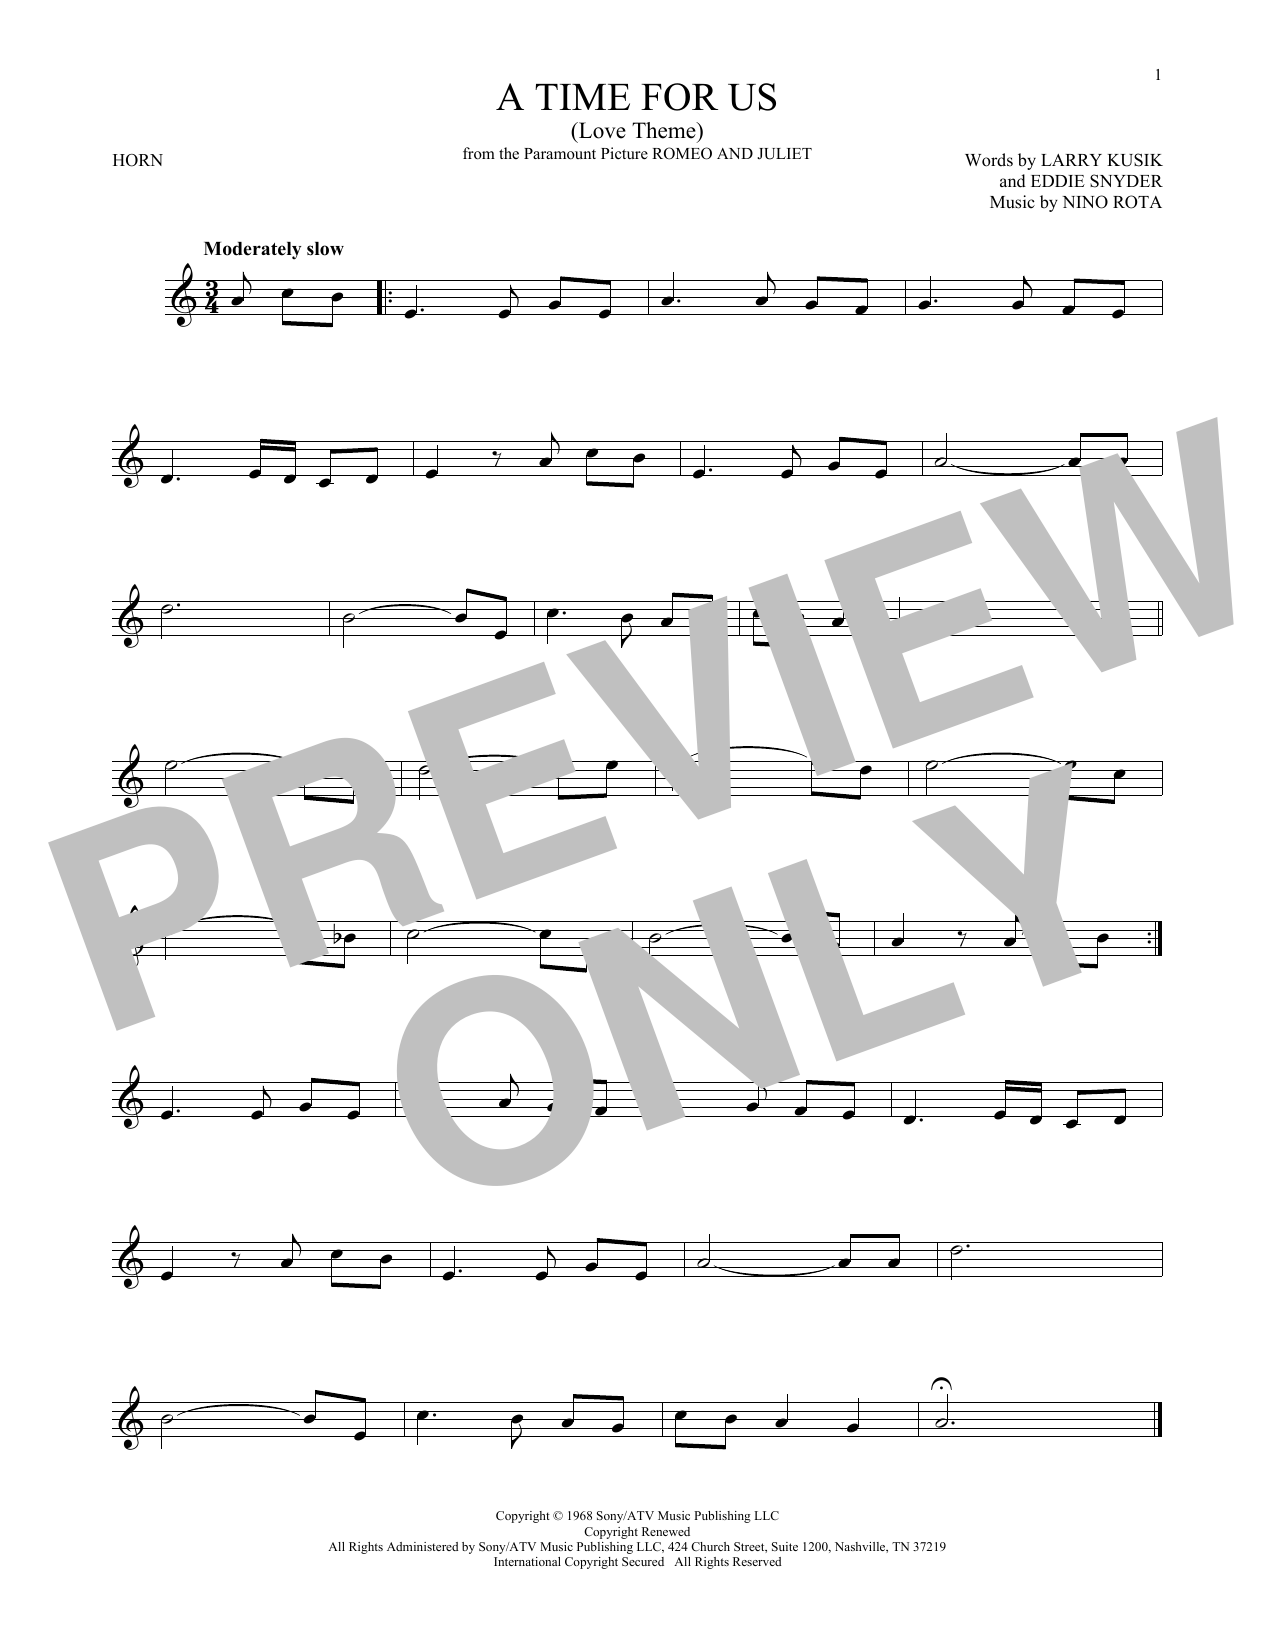 A Time For Us (Love Theme) (French Horn Solo)